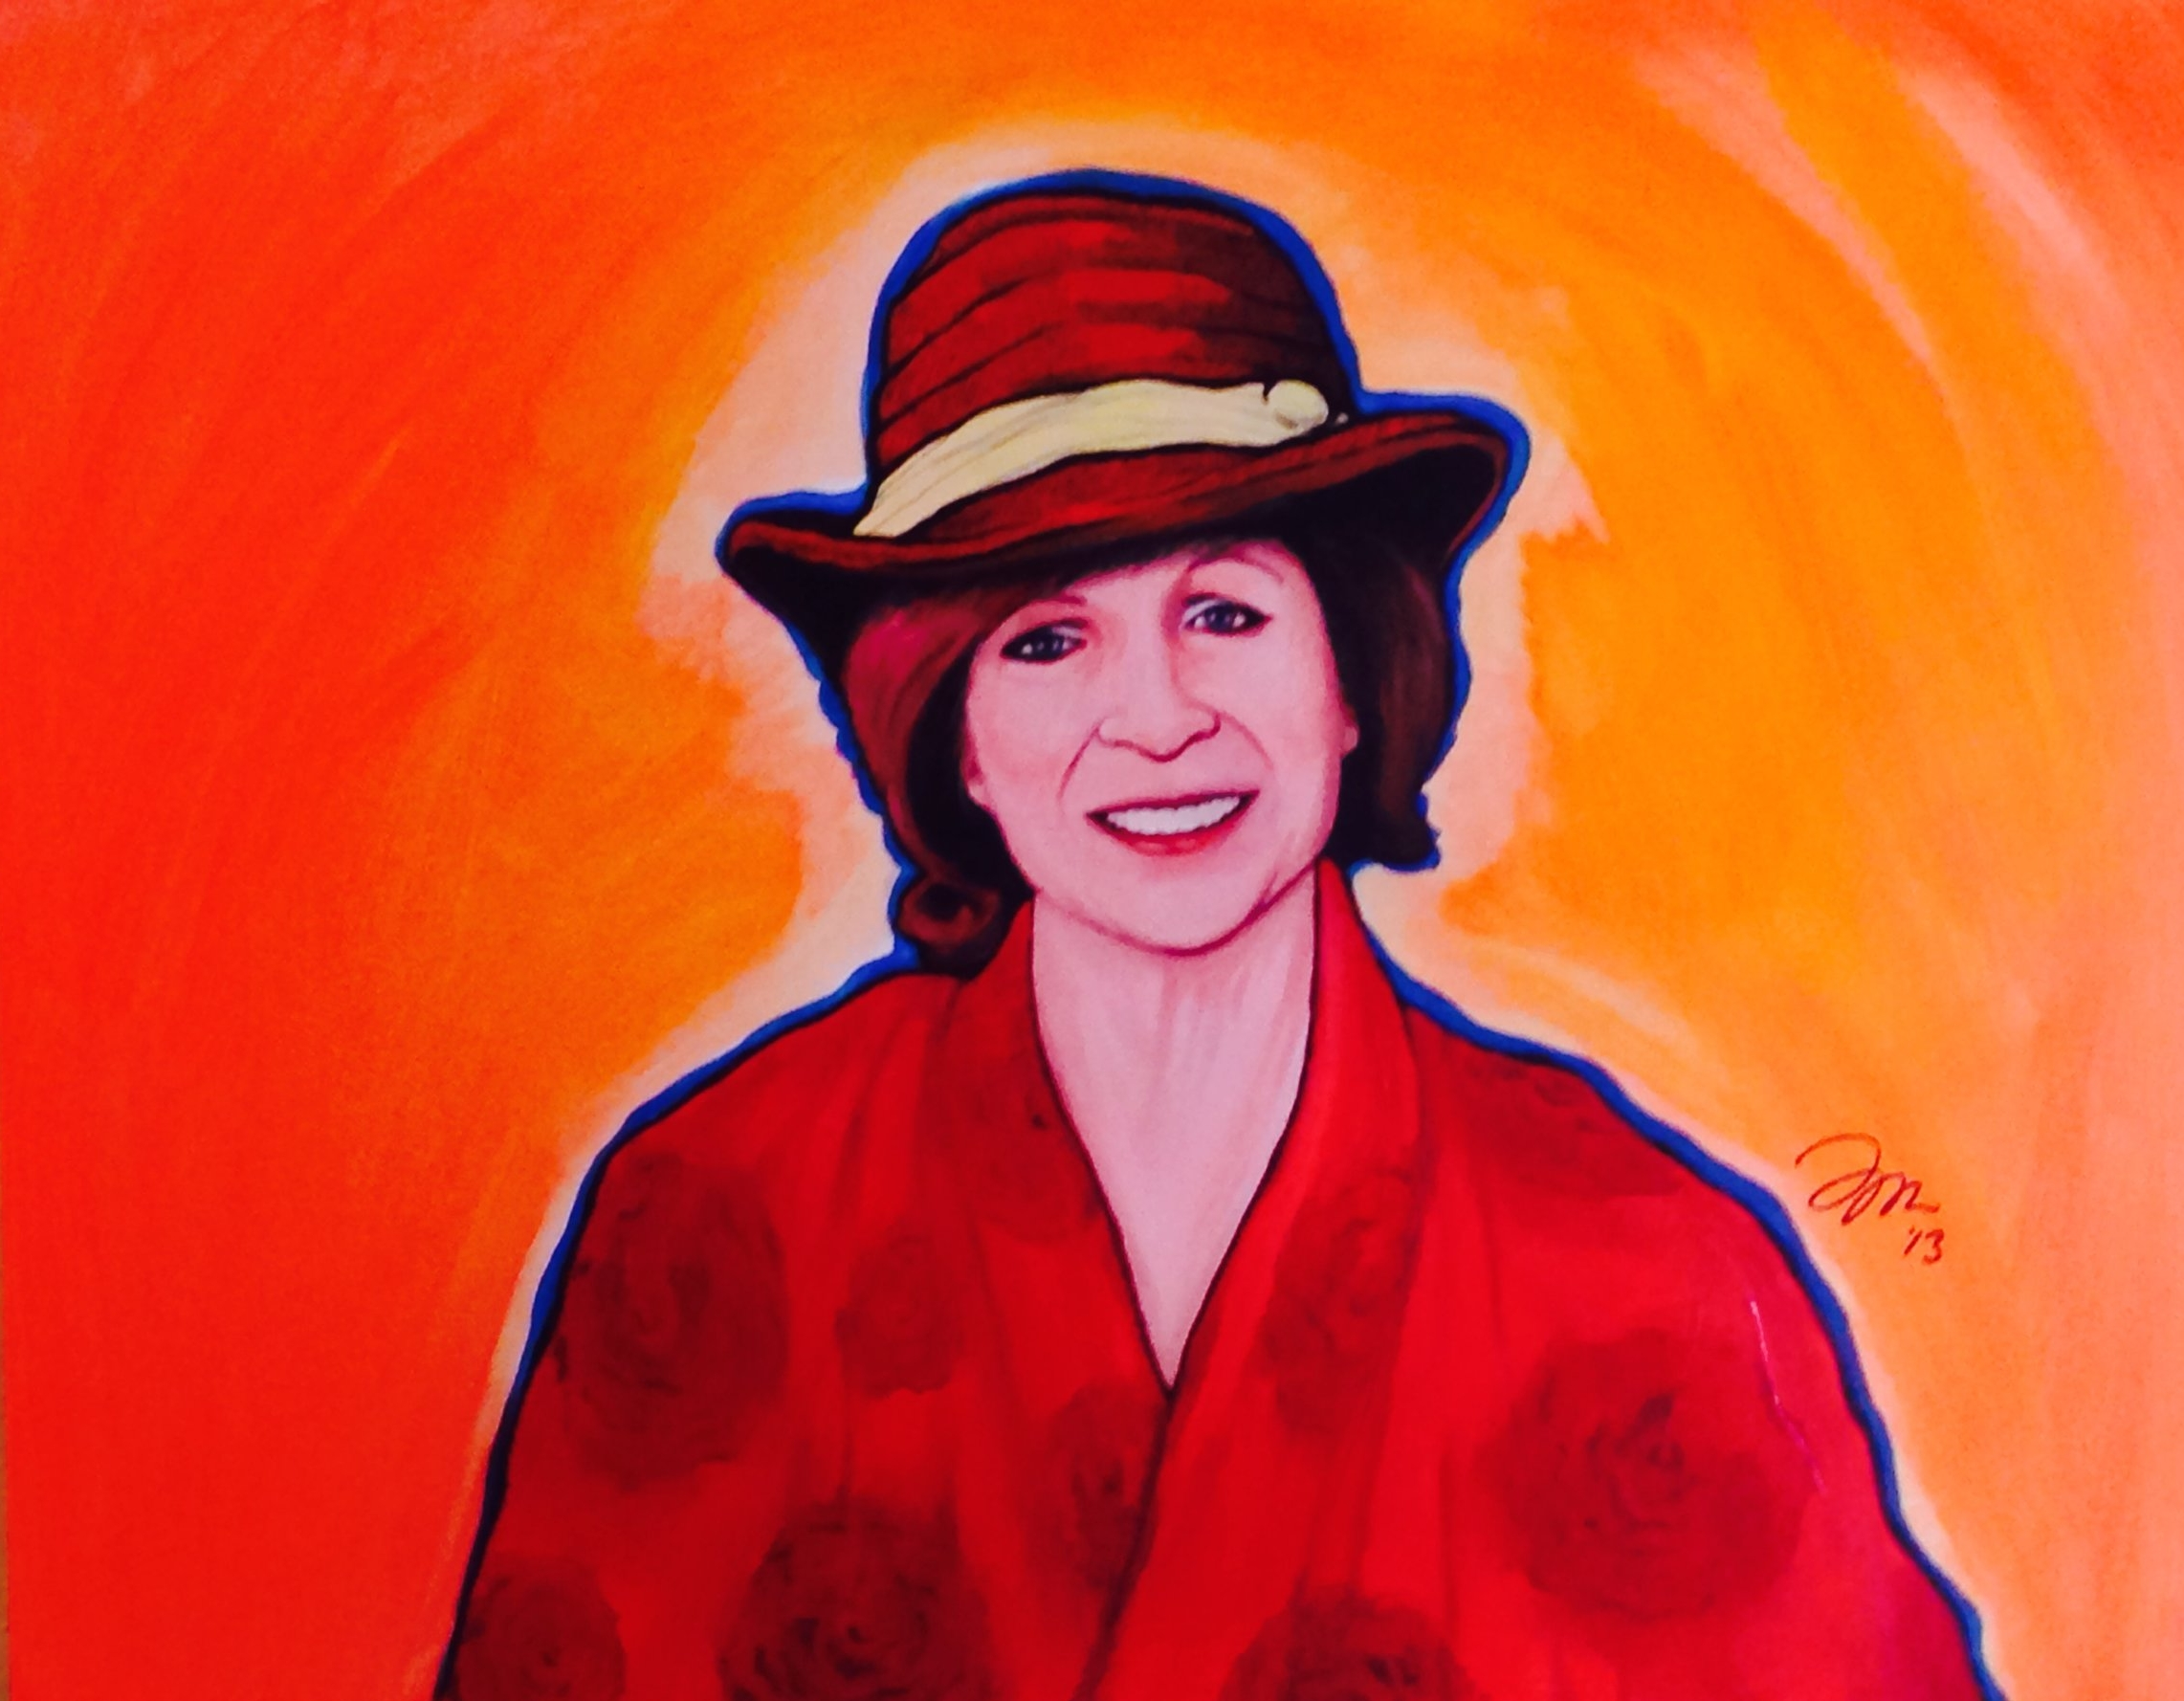 """Zamora, Gil.  Perspective Painting: Aunt Rosie with hat.  2013. Acrylic on canvas, 2"""" x 24"""". Private collection."""